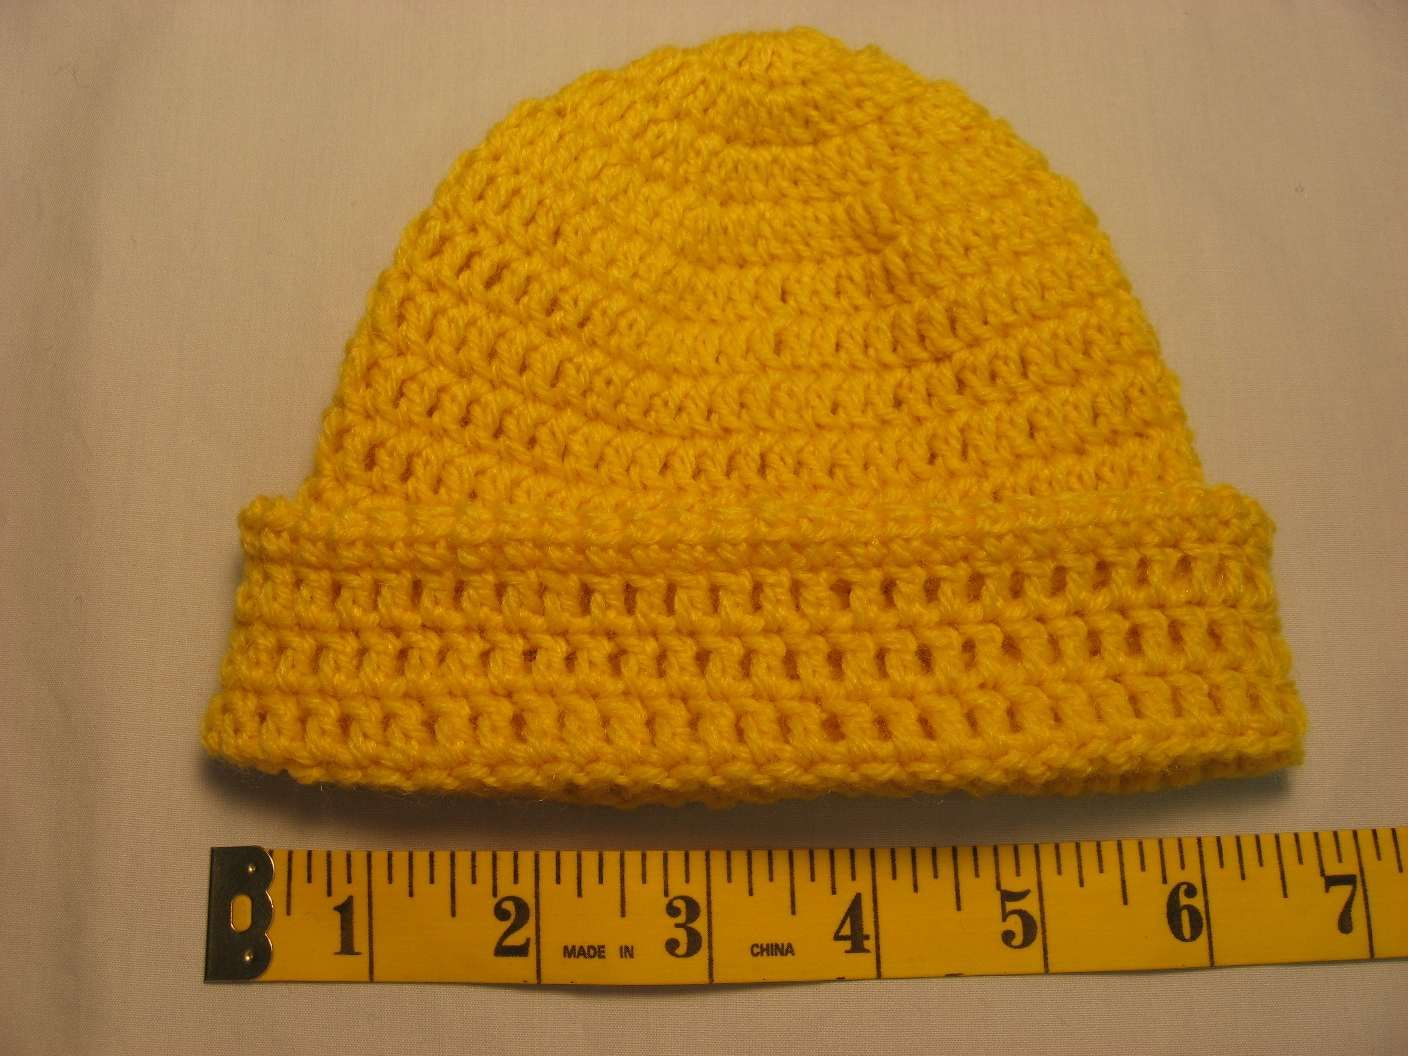 Crochet patterns for hats hooked on needles hats to crochet explore crochet baby hat patterns and more bankloansurffo Images